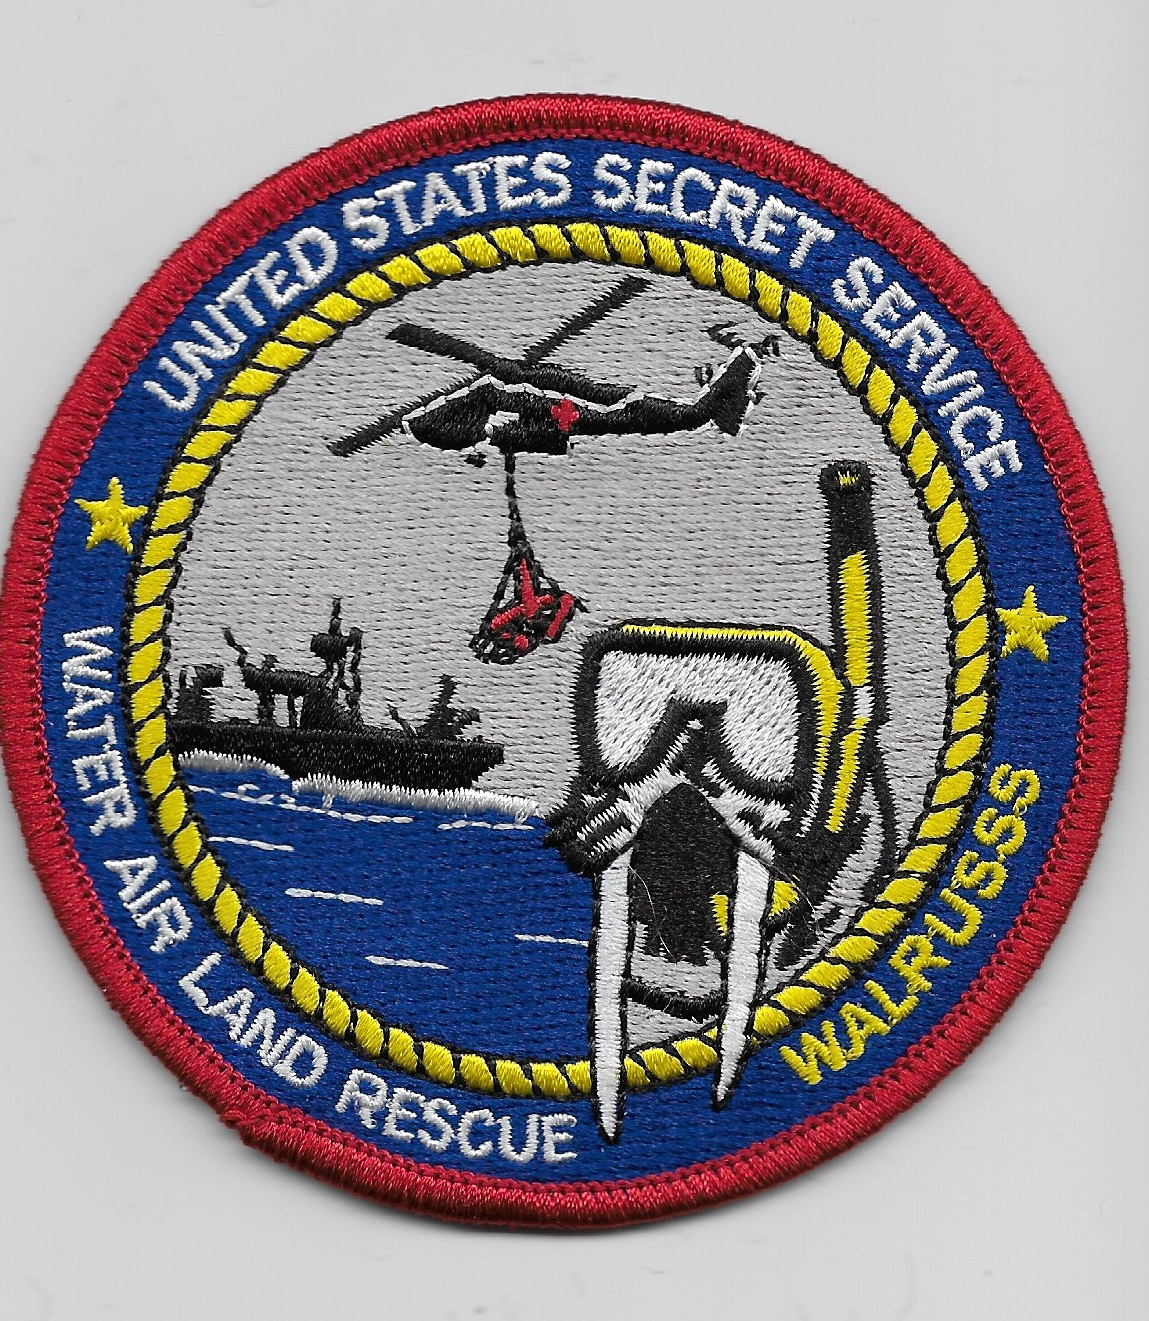 USSS Water Air Land Rescue Color